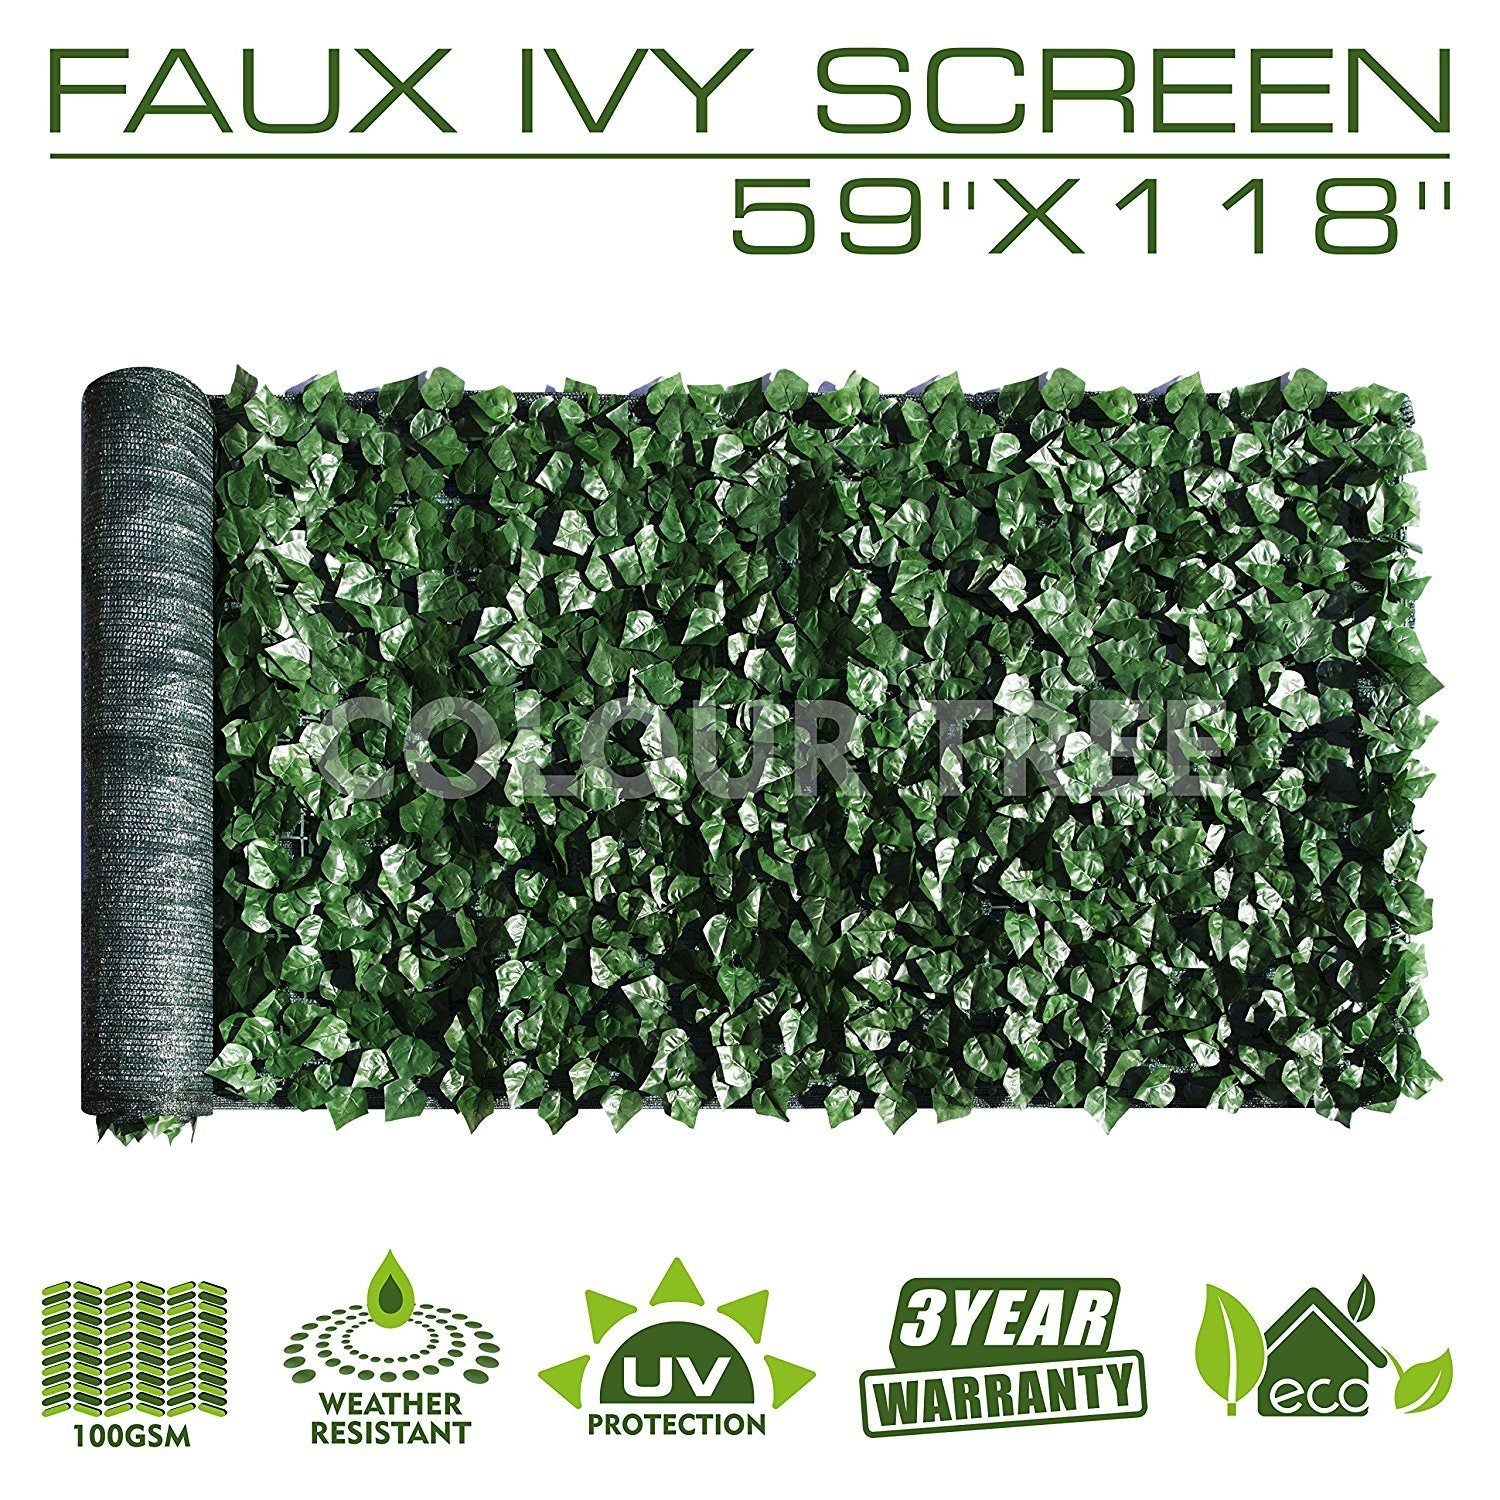 "Artificial Hedges Faux Ivy Leaves Fence Privacy Screen Panels  Decorative Trellis - 59"" x 118"" - Colourtree inc"